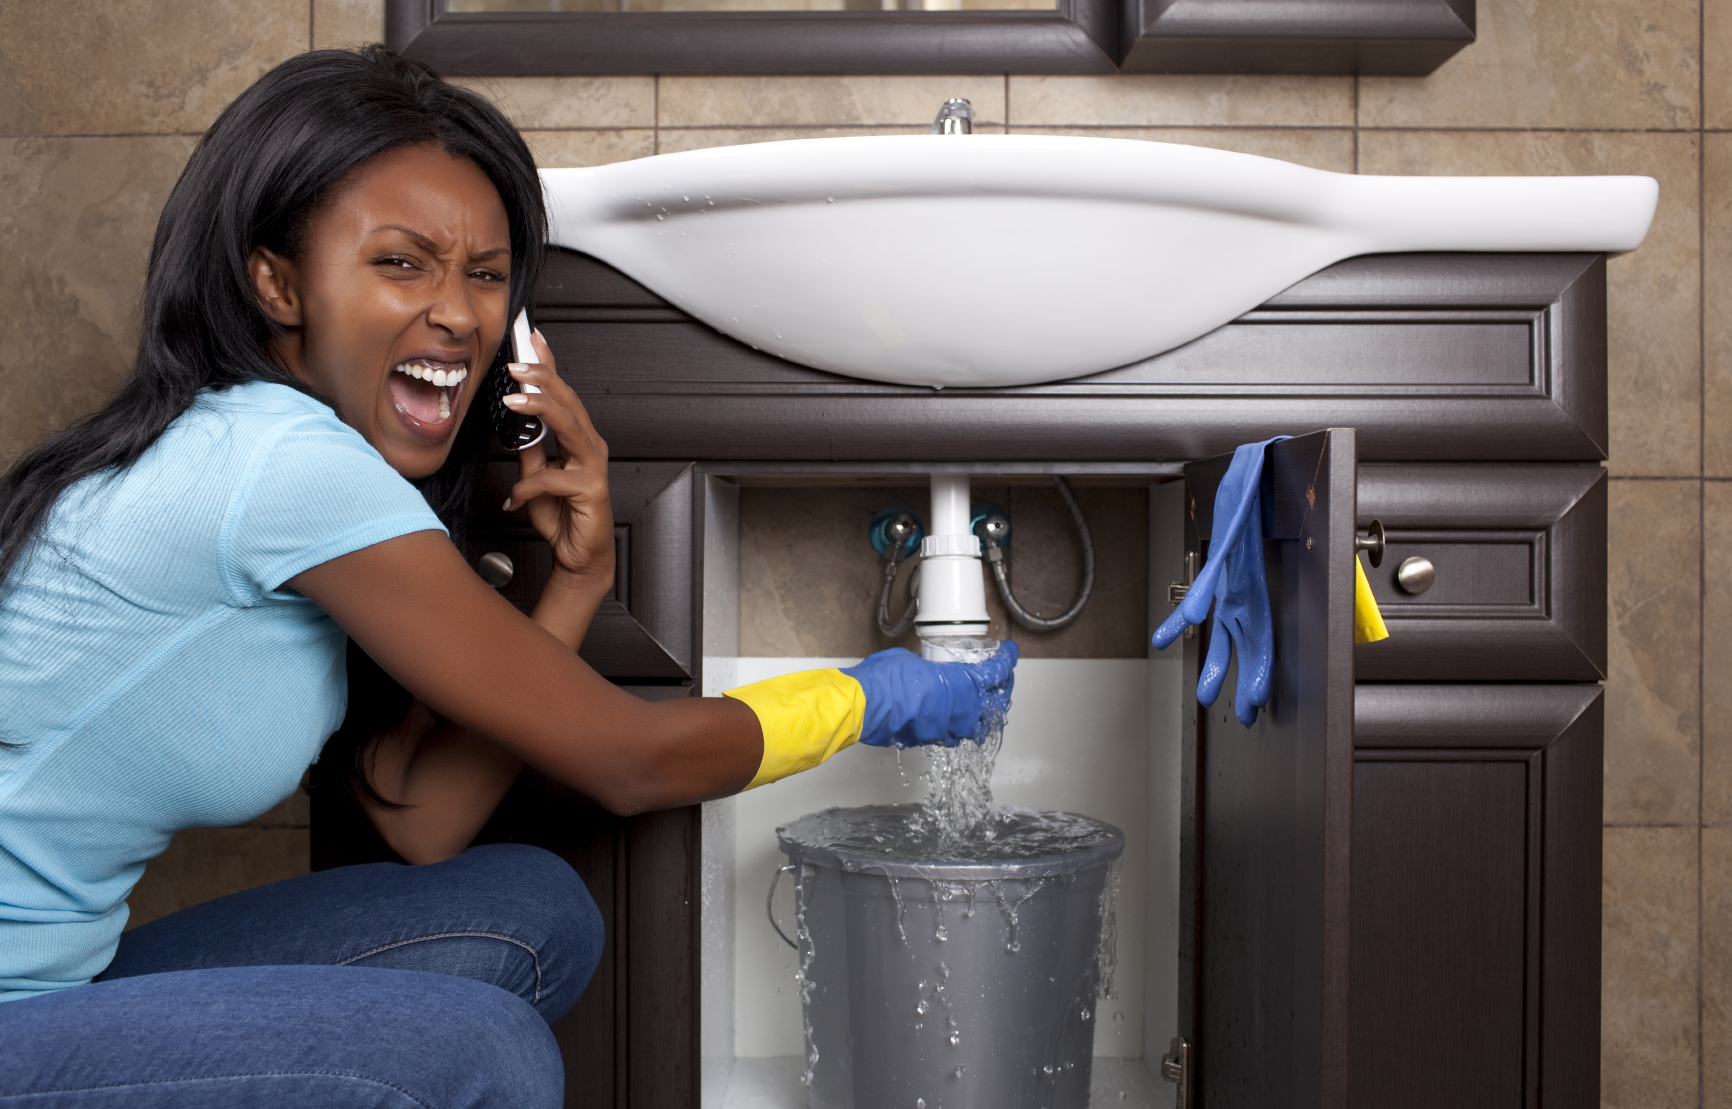 Drain Cleaning before Winter in Lake Orion Michigan – Lake Orion MI Plumbing and Drain Service